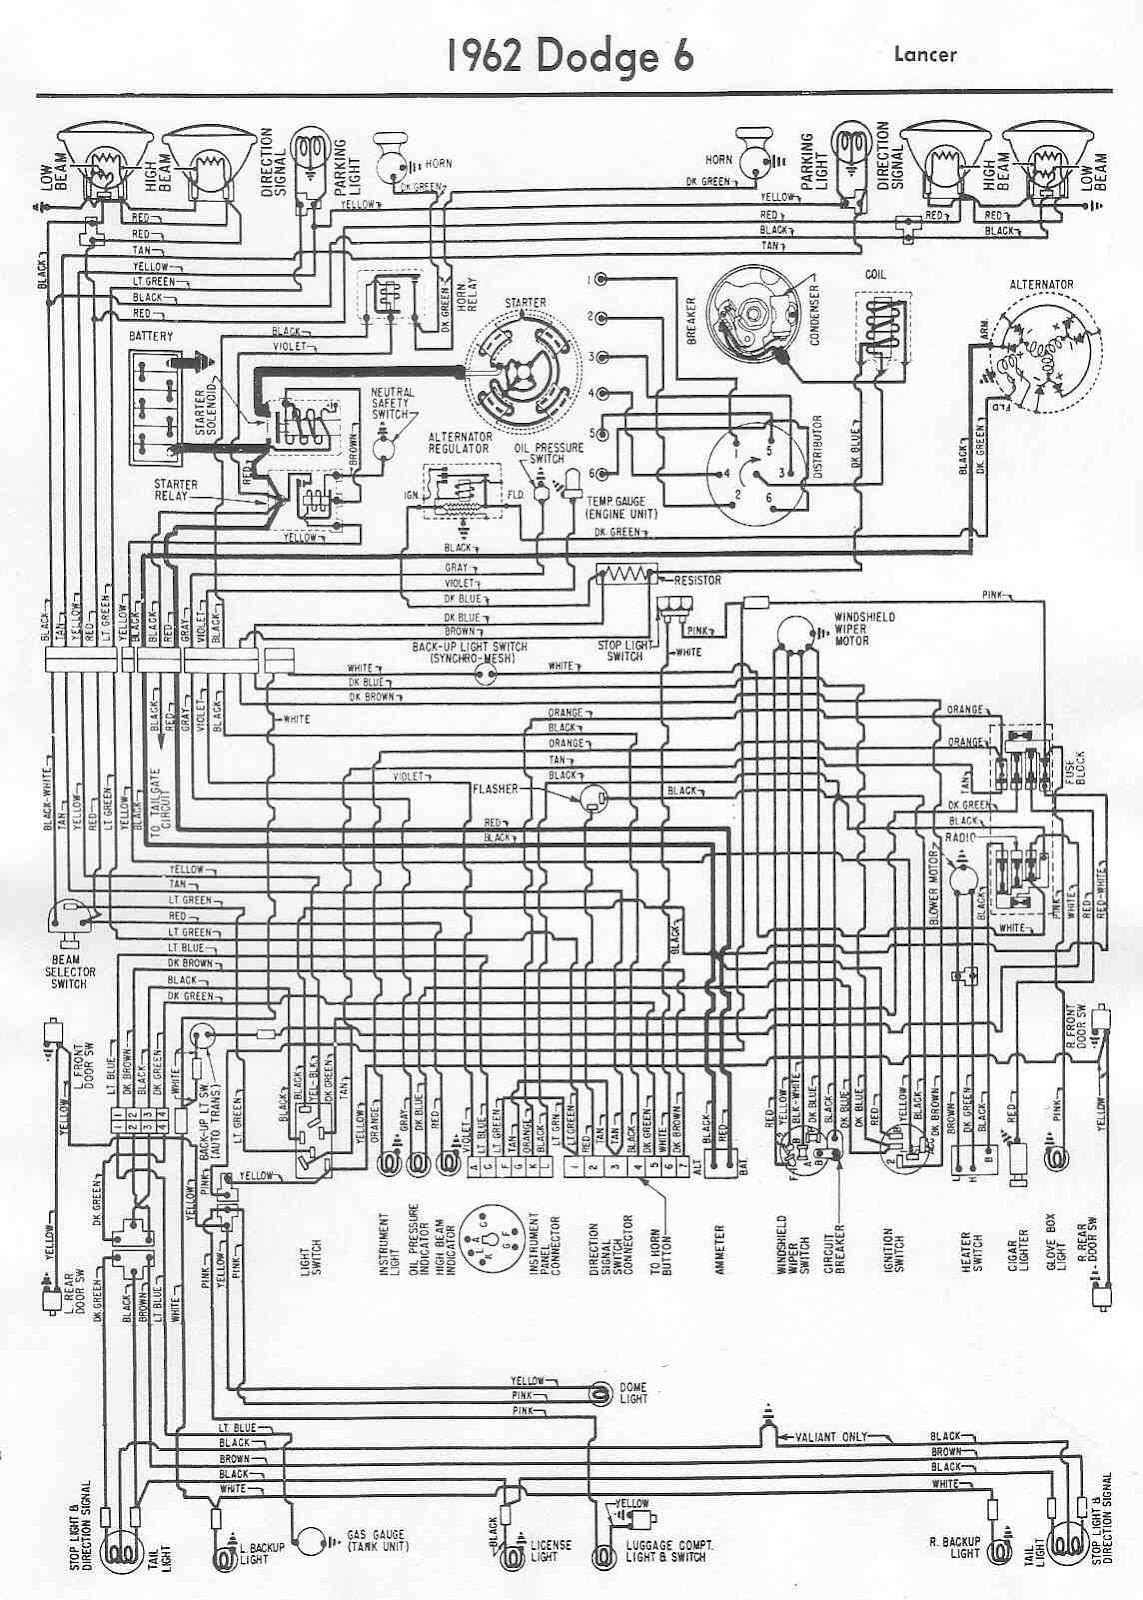 Dodge Lancer 1962 Complete Electrical Wiring Diagram